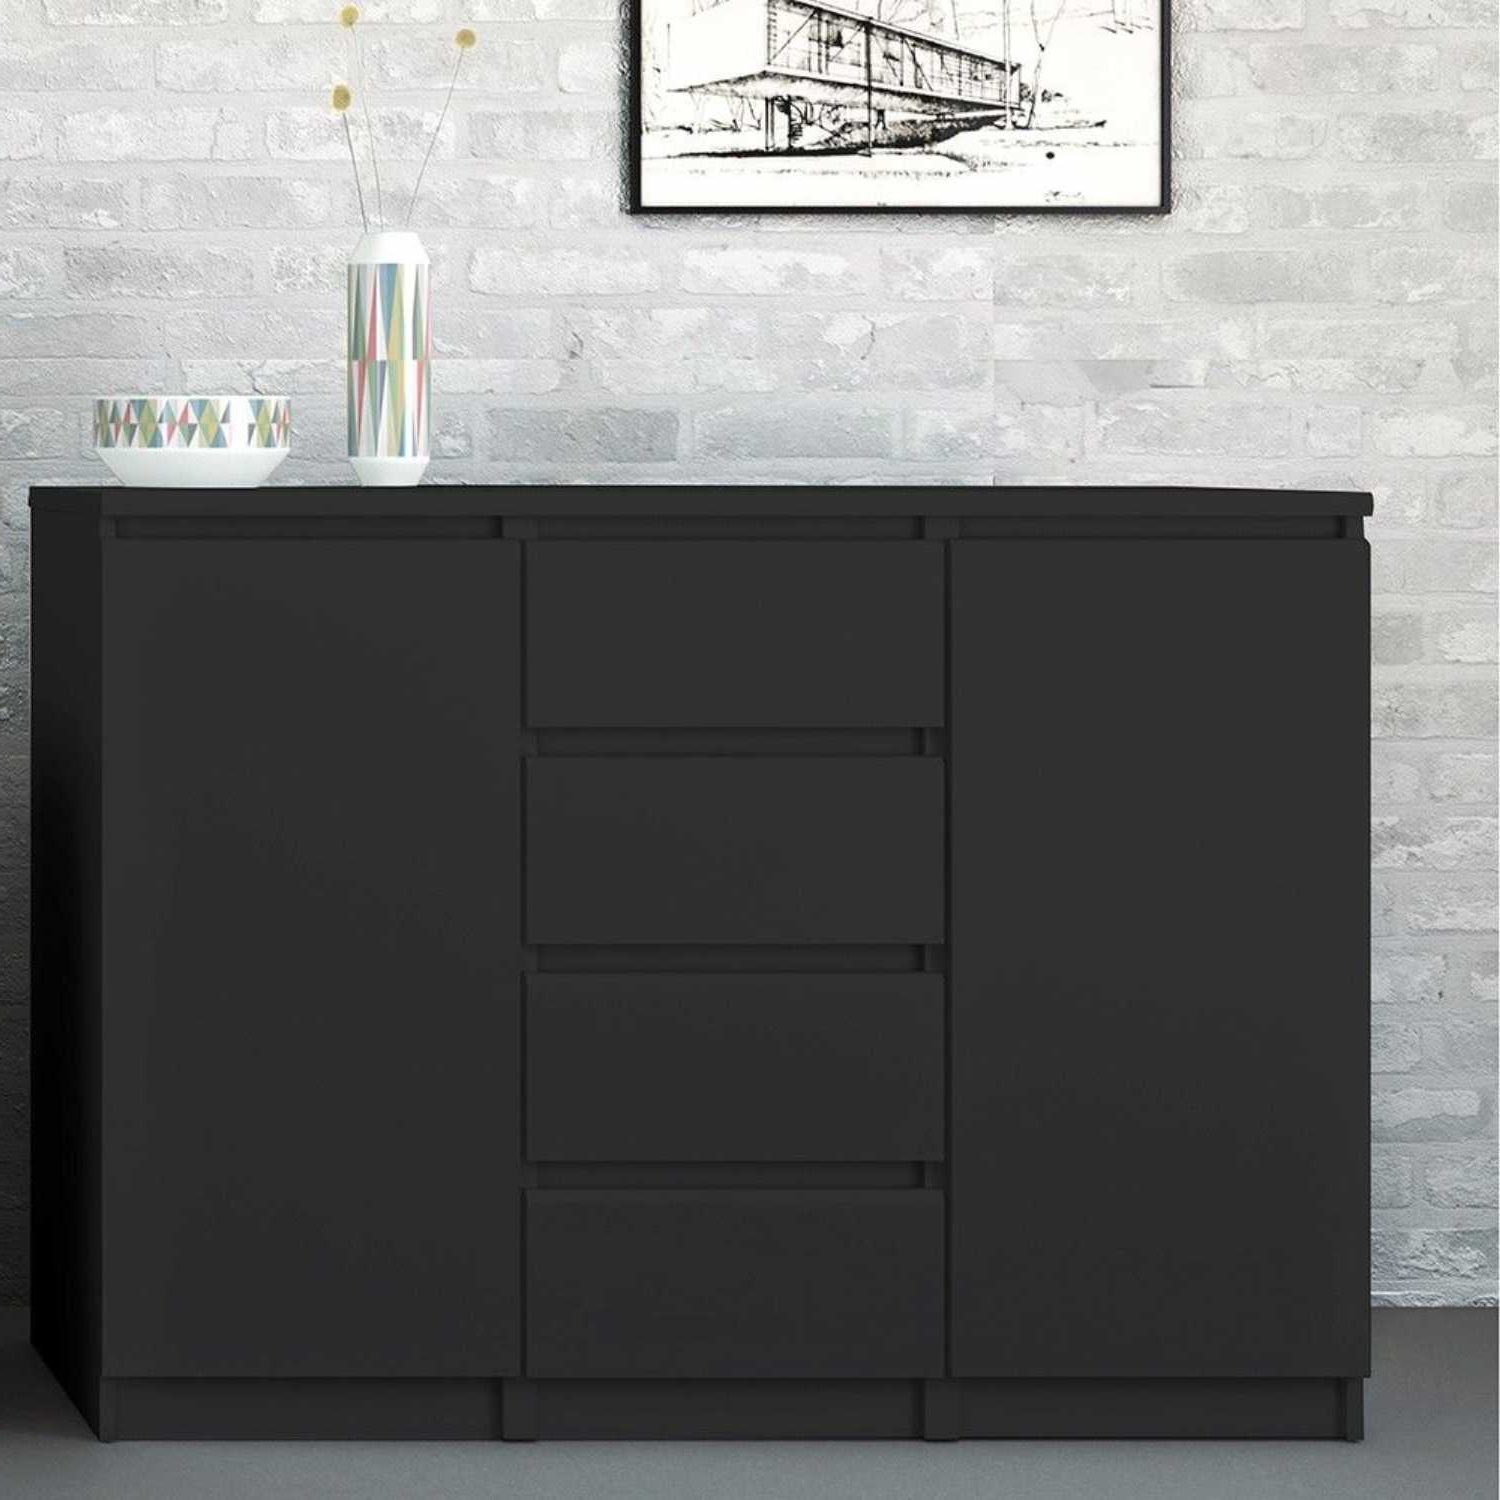 """Well Liked Modern Matt Black Painted 4 Drawer 2 Door Sideboard 120cm Wide With Regard To Daisi 50"""" Wide 2 Drawer Sideboards (View 3 of 20)"""